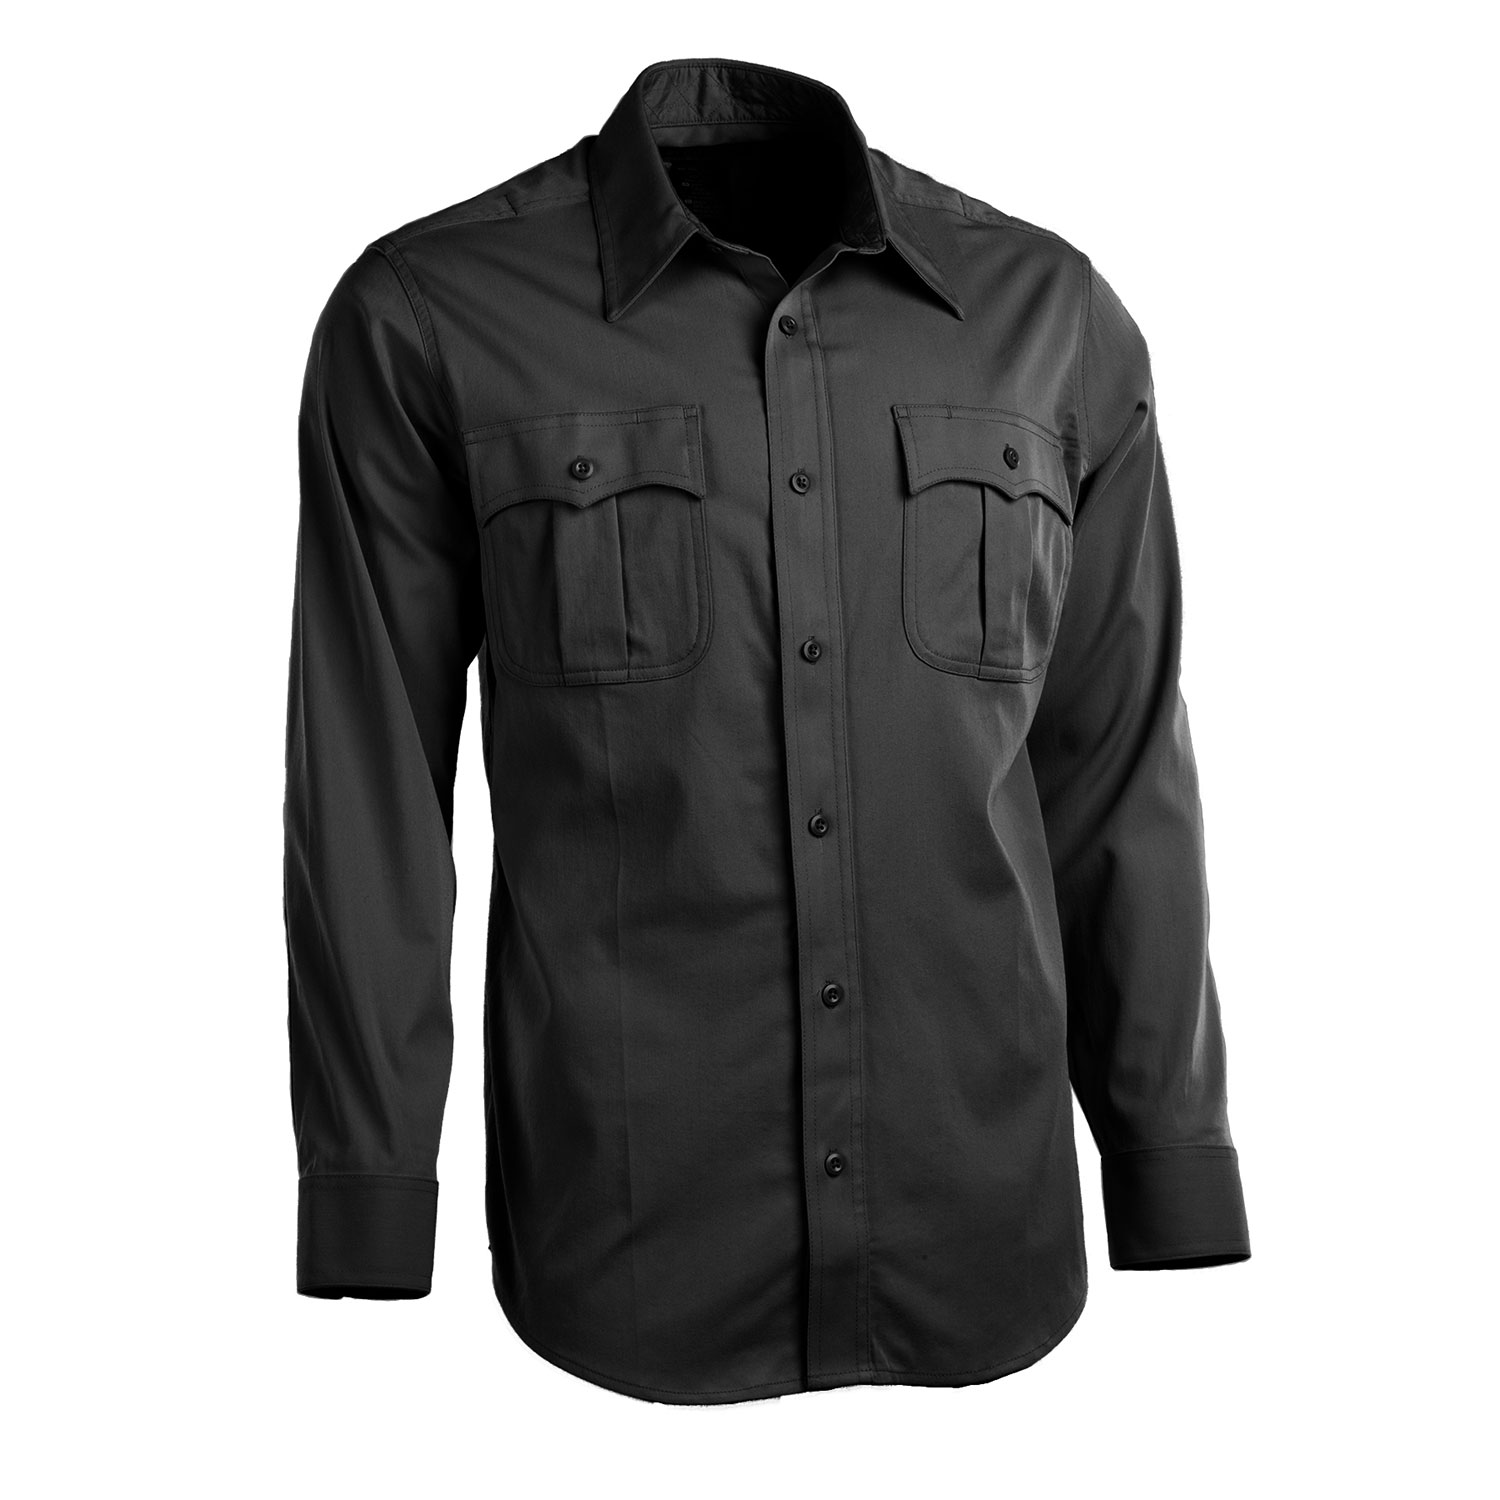 5.11 Class A Flex-Tac Poly/Wool Twill Long Sleeve Shirt